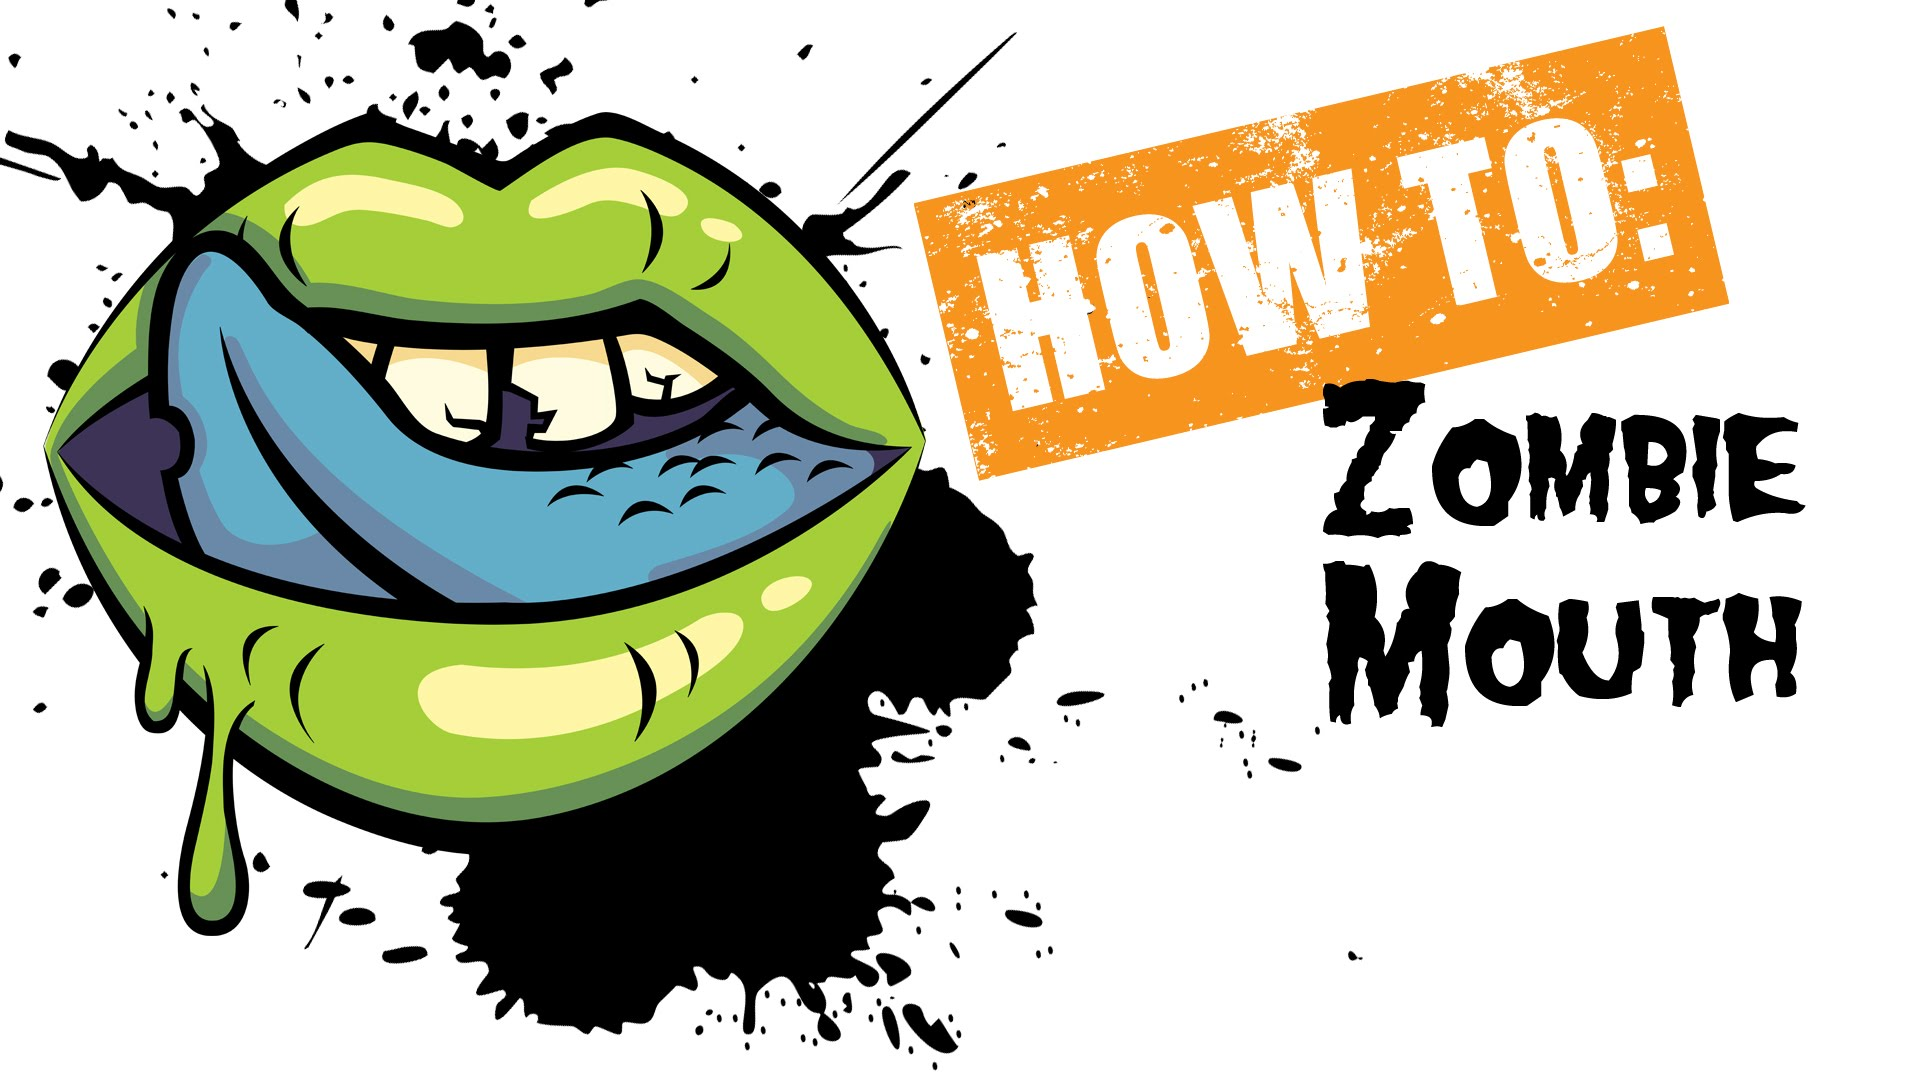 Zombie clipart mouth #7